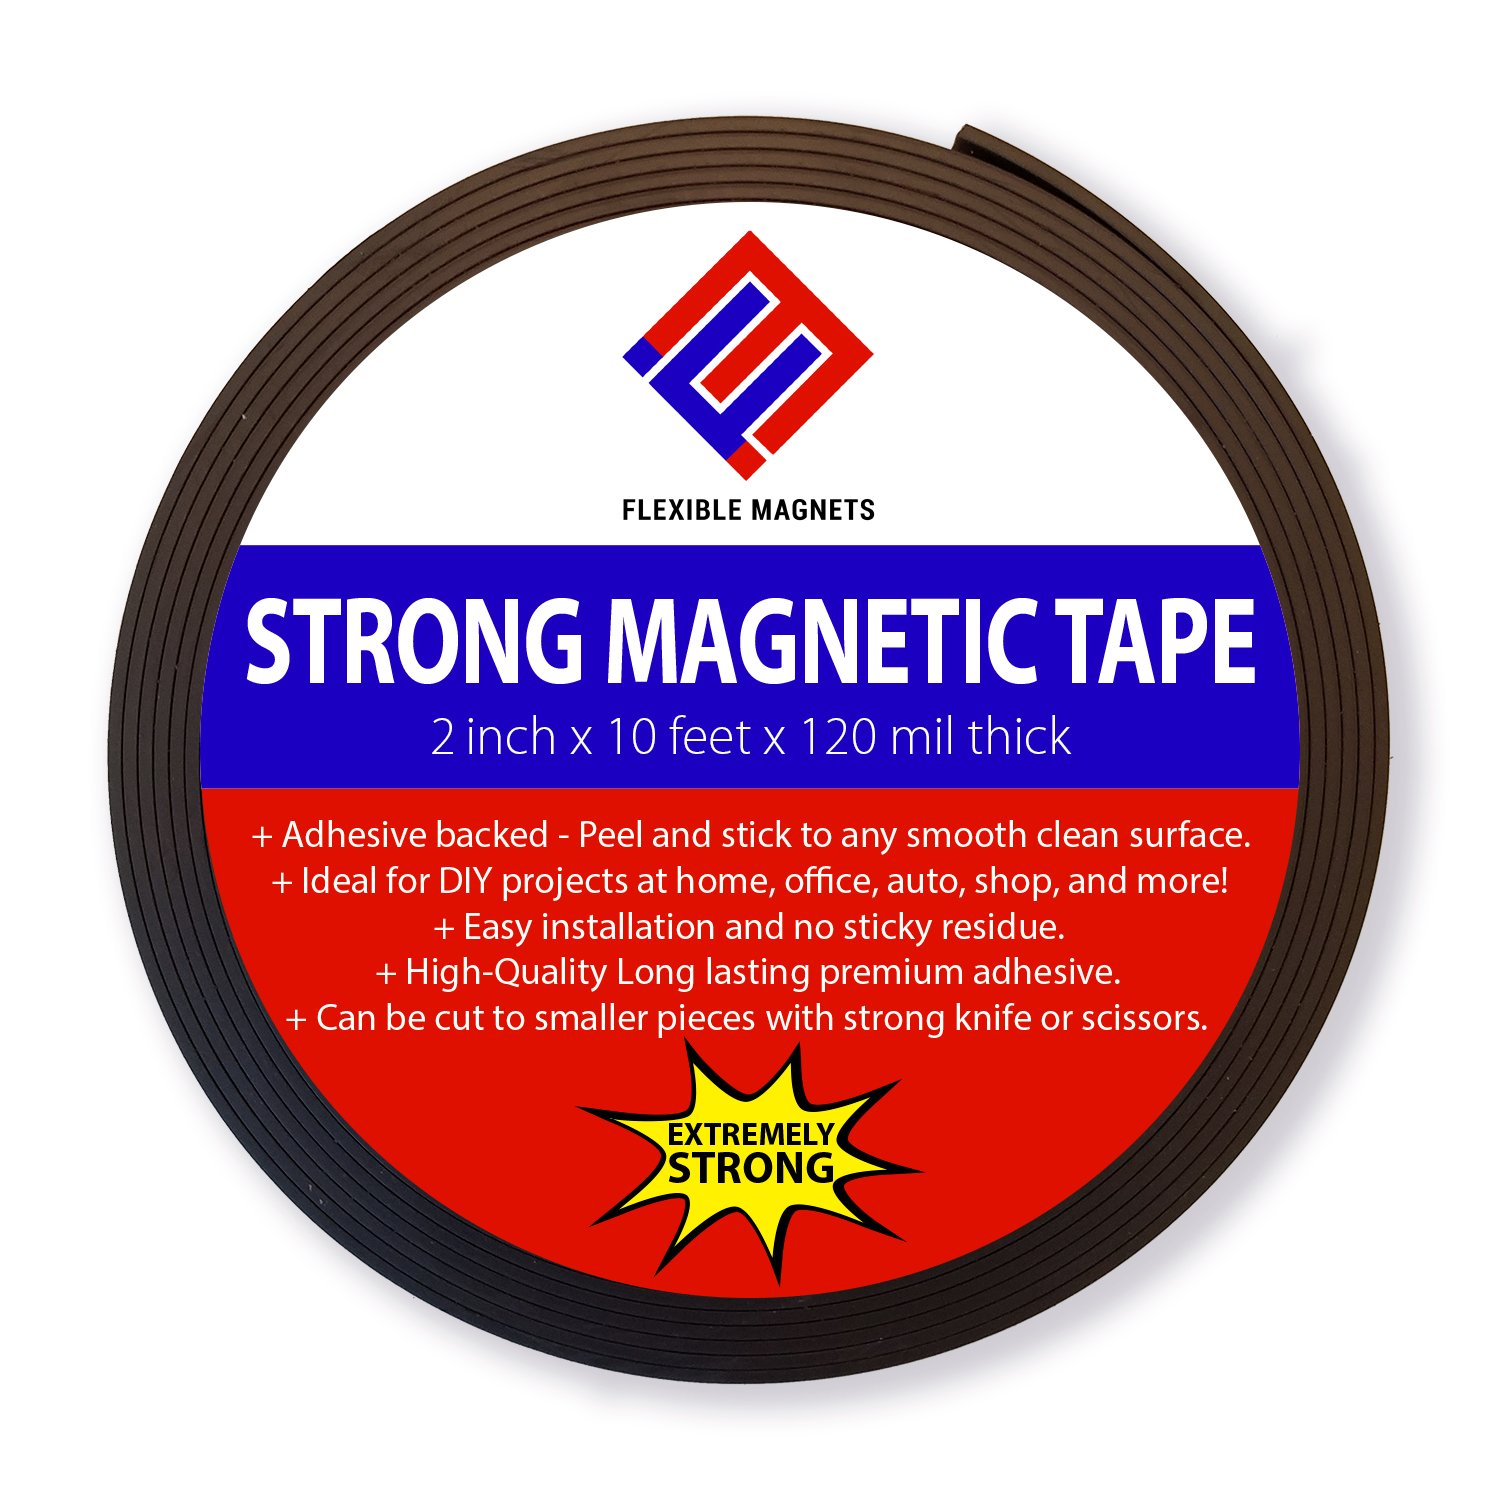 Adhesive Magnetic Strip - 120 Mil Thick - Incredibly Strong Flexible Adhesive Magnetic Tape - 2'' wide x 10 Feet - The STRONGEST and THICKEST Magnetic strip on the market!